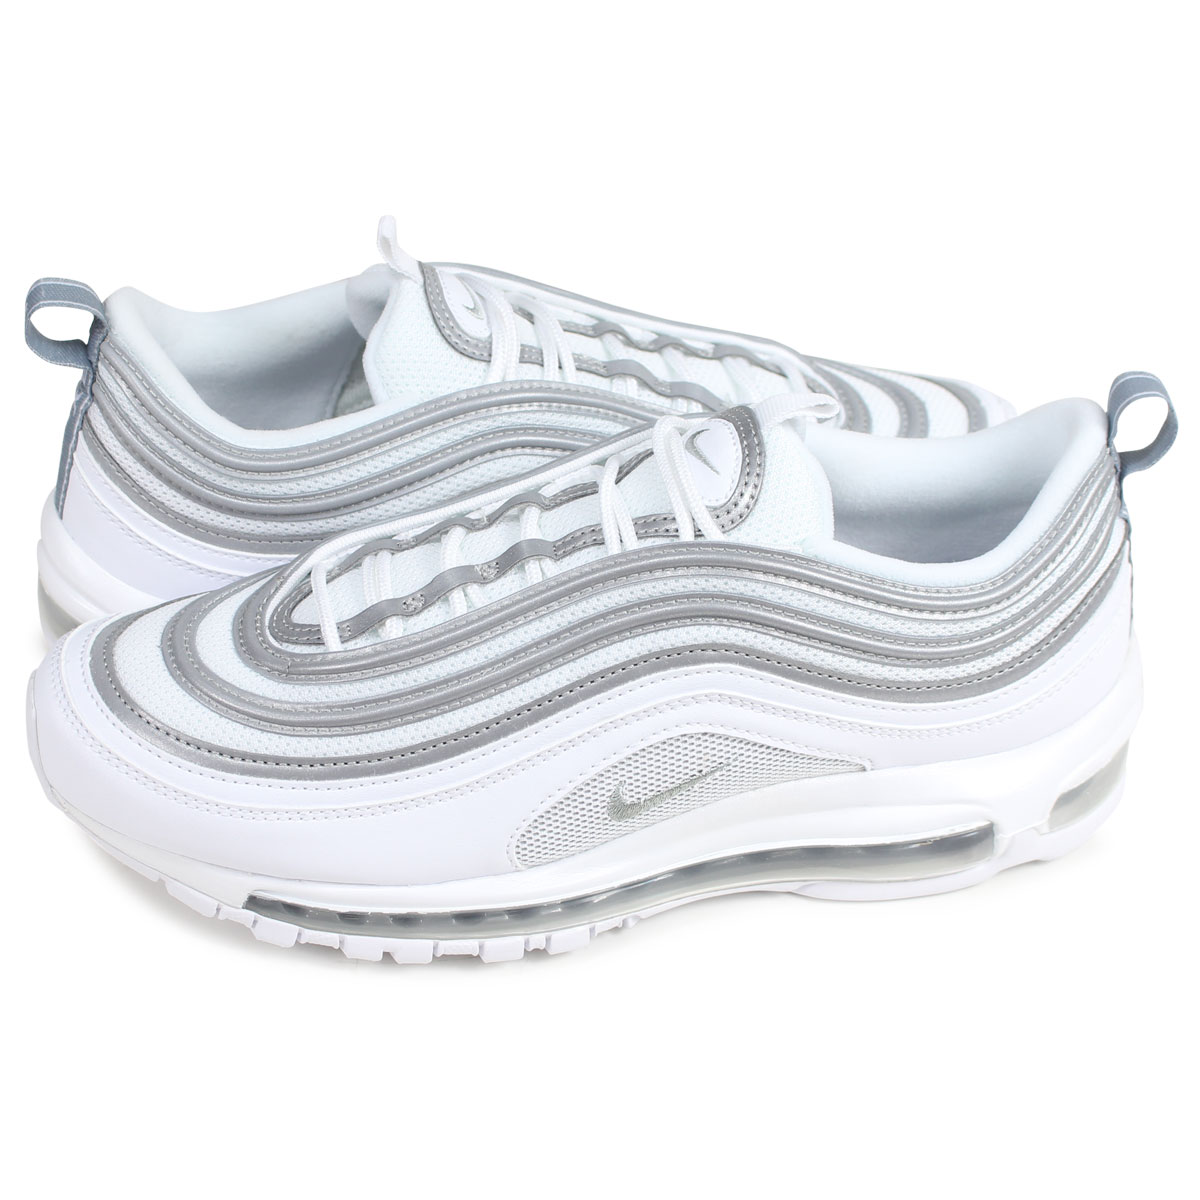 Nike NIKE Air Max 97 sneakers men AIR MAX 97 white white 921,826 105